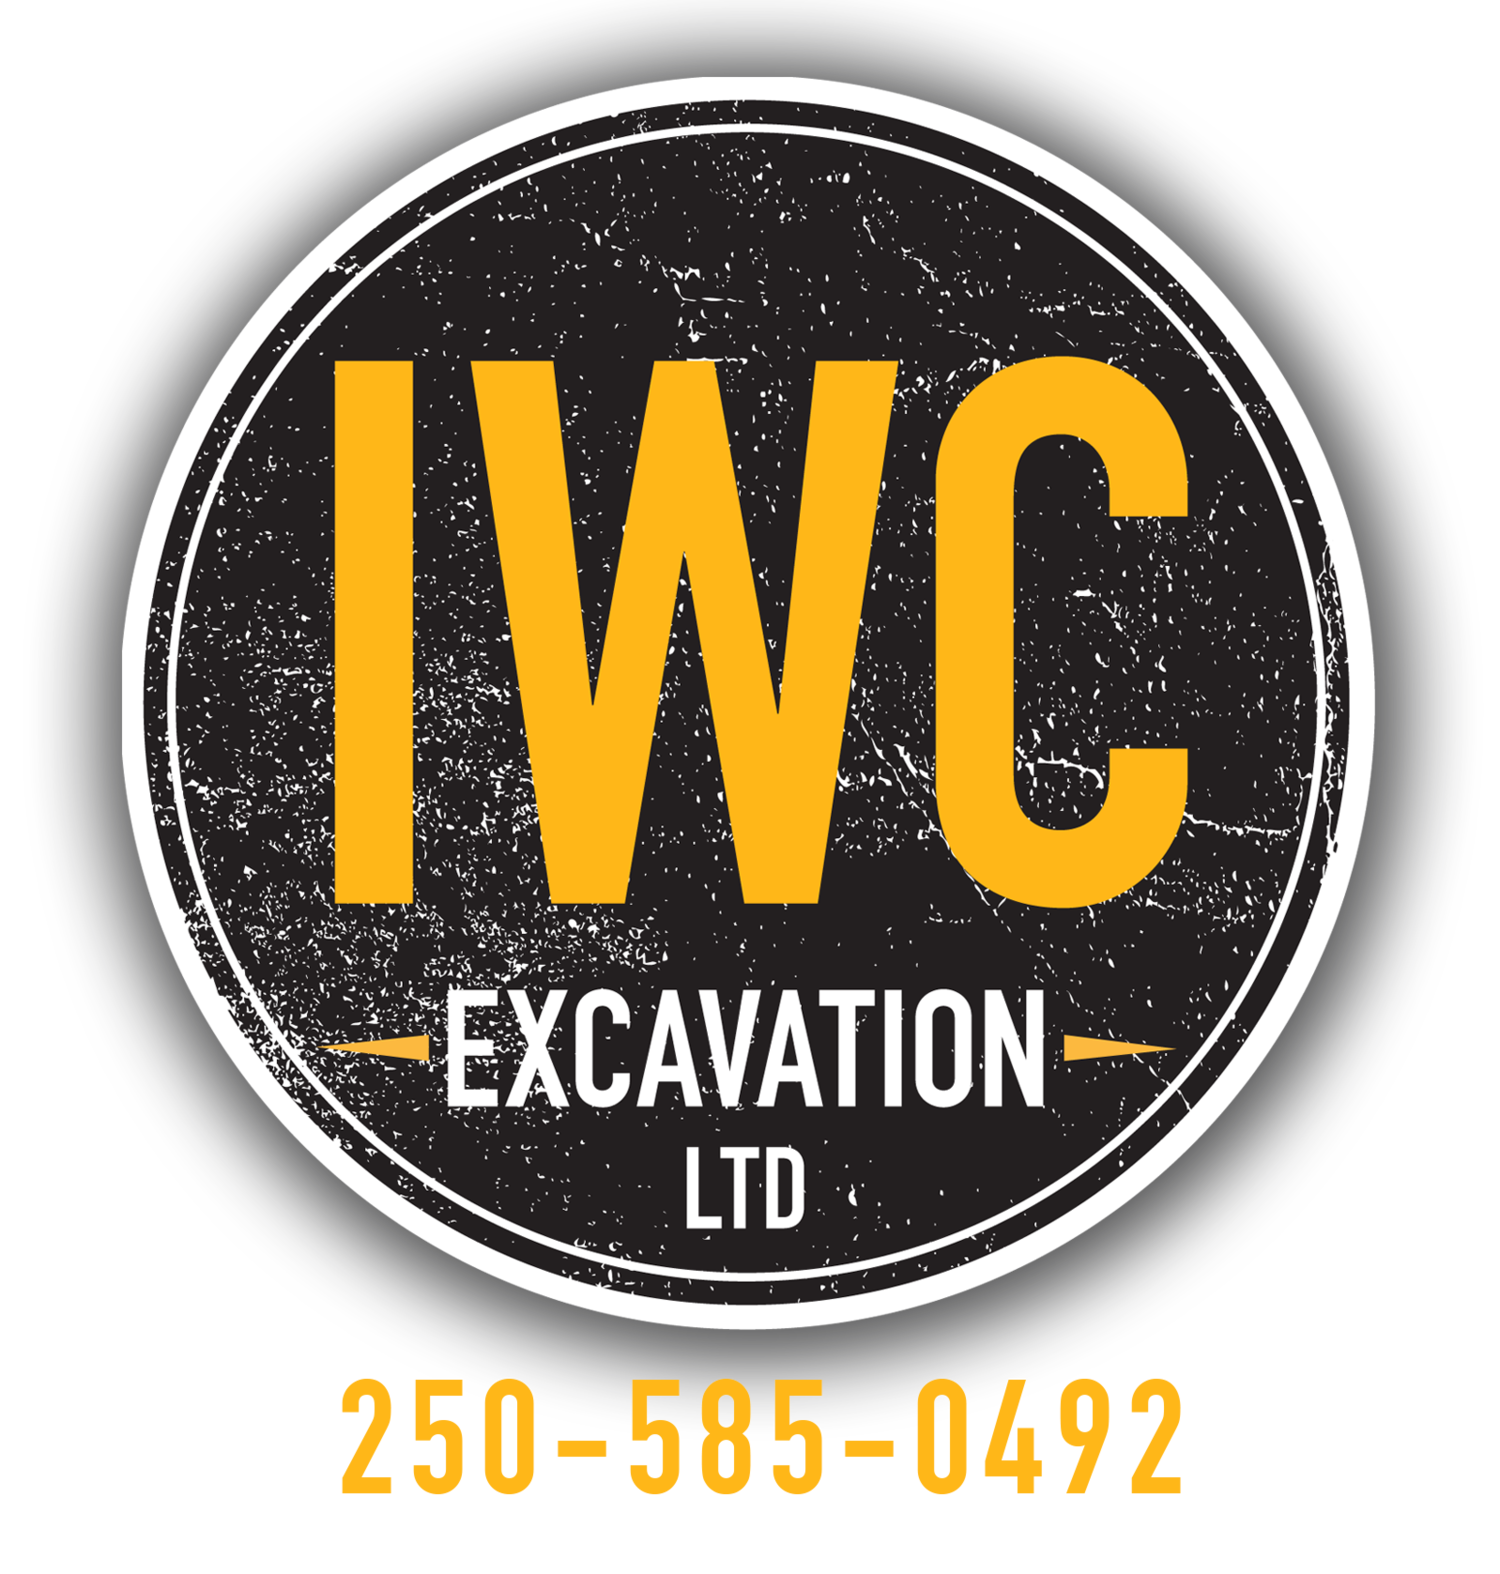 IWC EXCAVATION LTD.